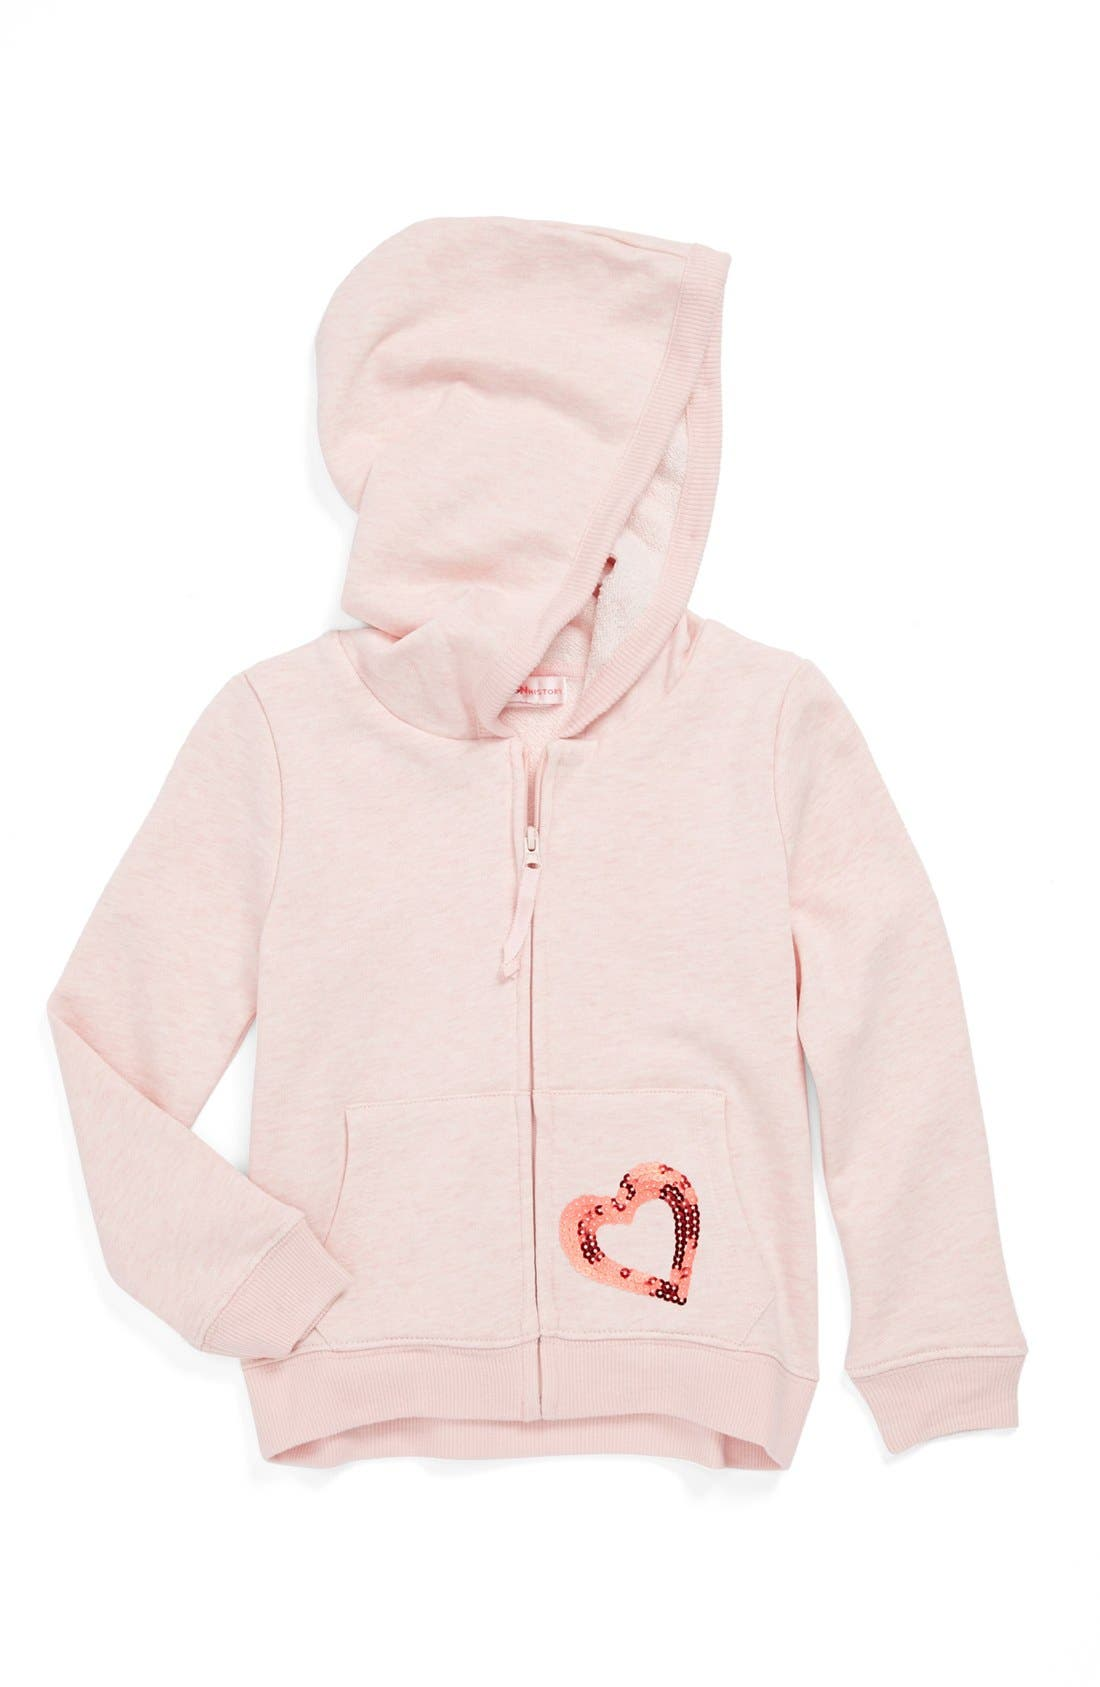 Main Image - Design History Zip Hoodie (Toddler Girls)